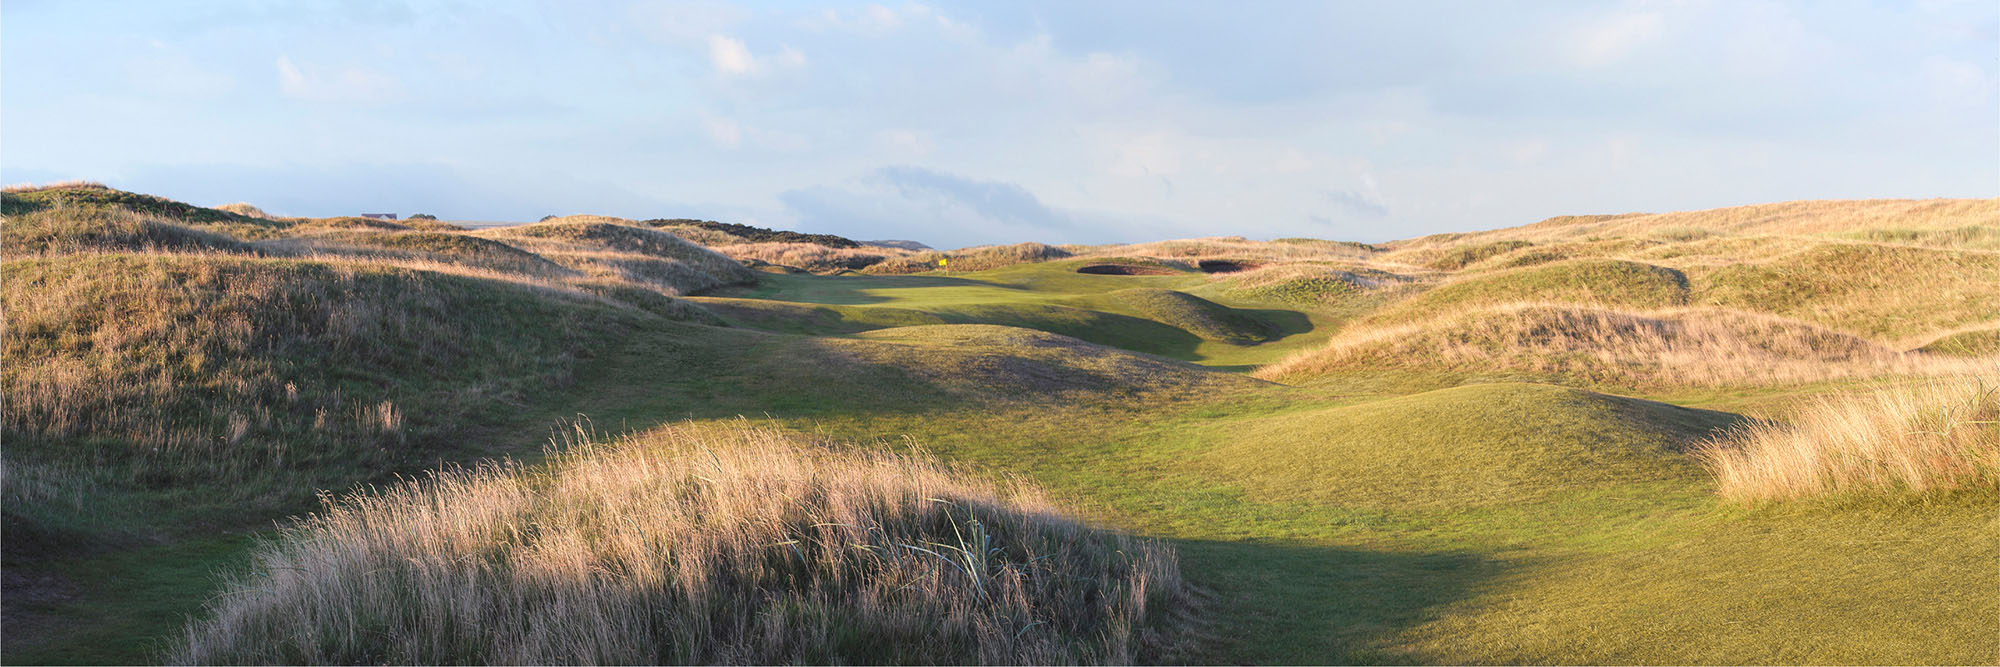 Golf Course Image - Royal Aberdeen Golf Club No. 6